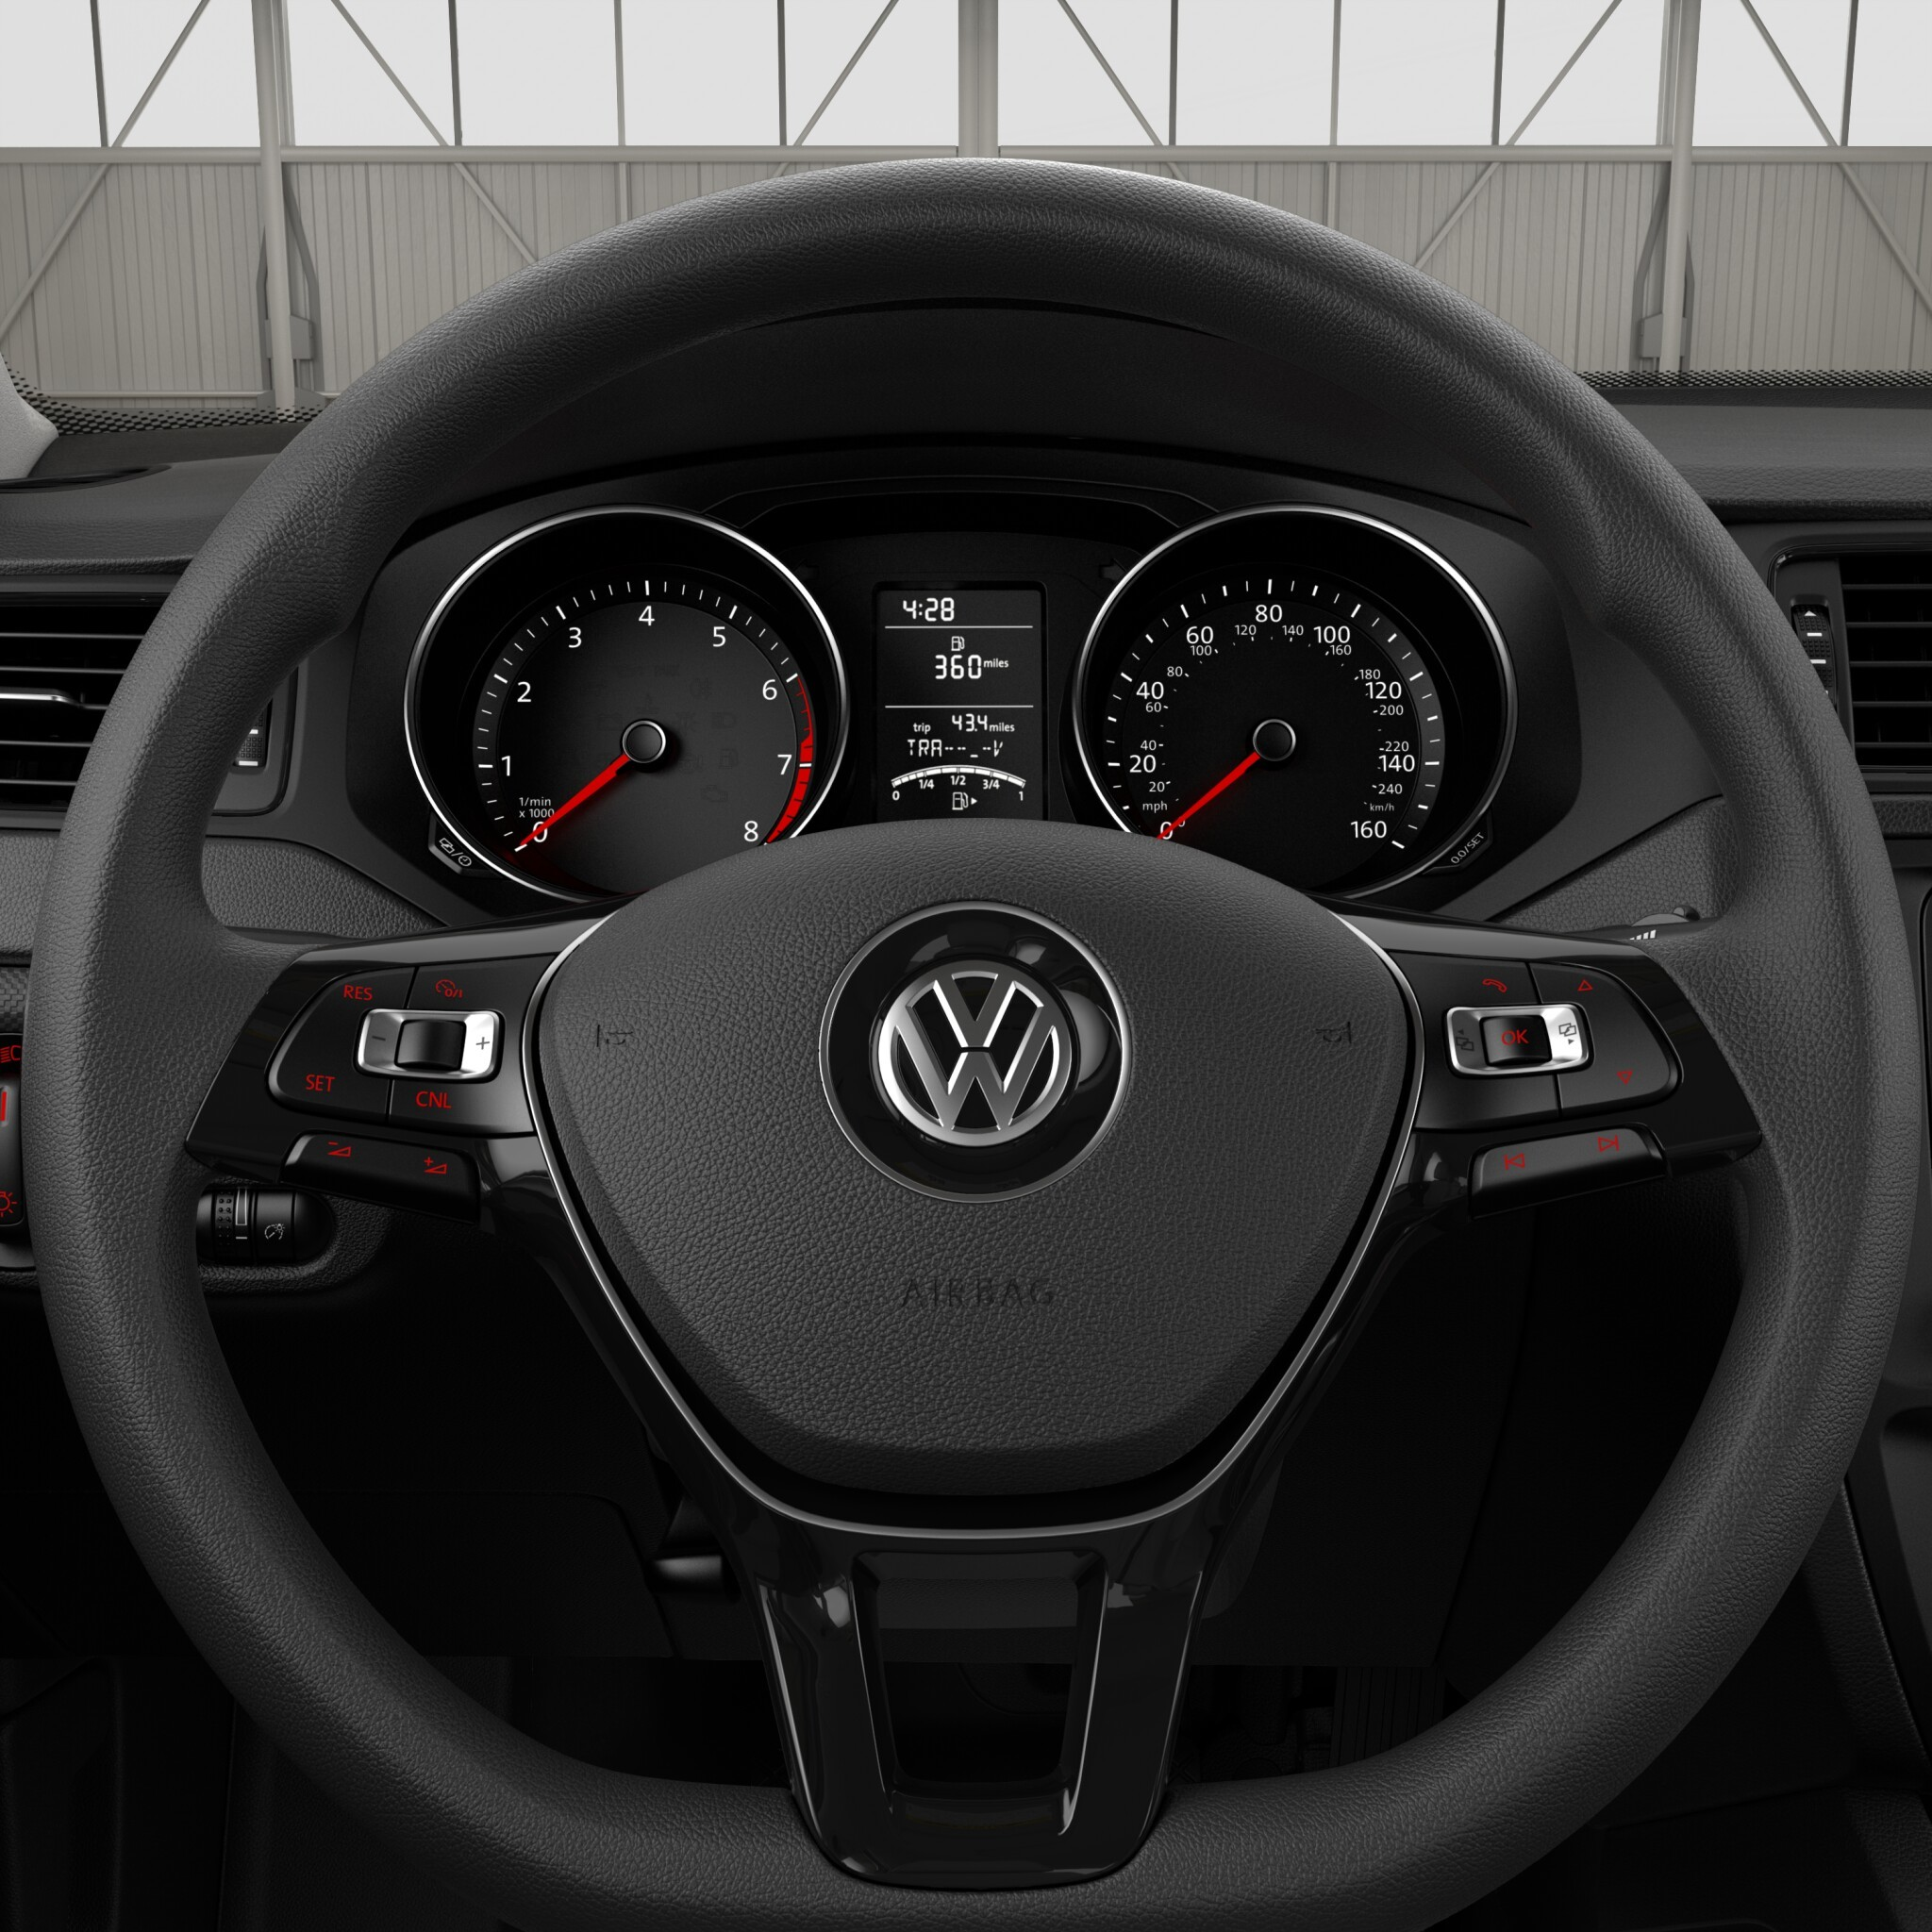 2016 VW Jetta Steering Wheel Controls